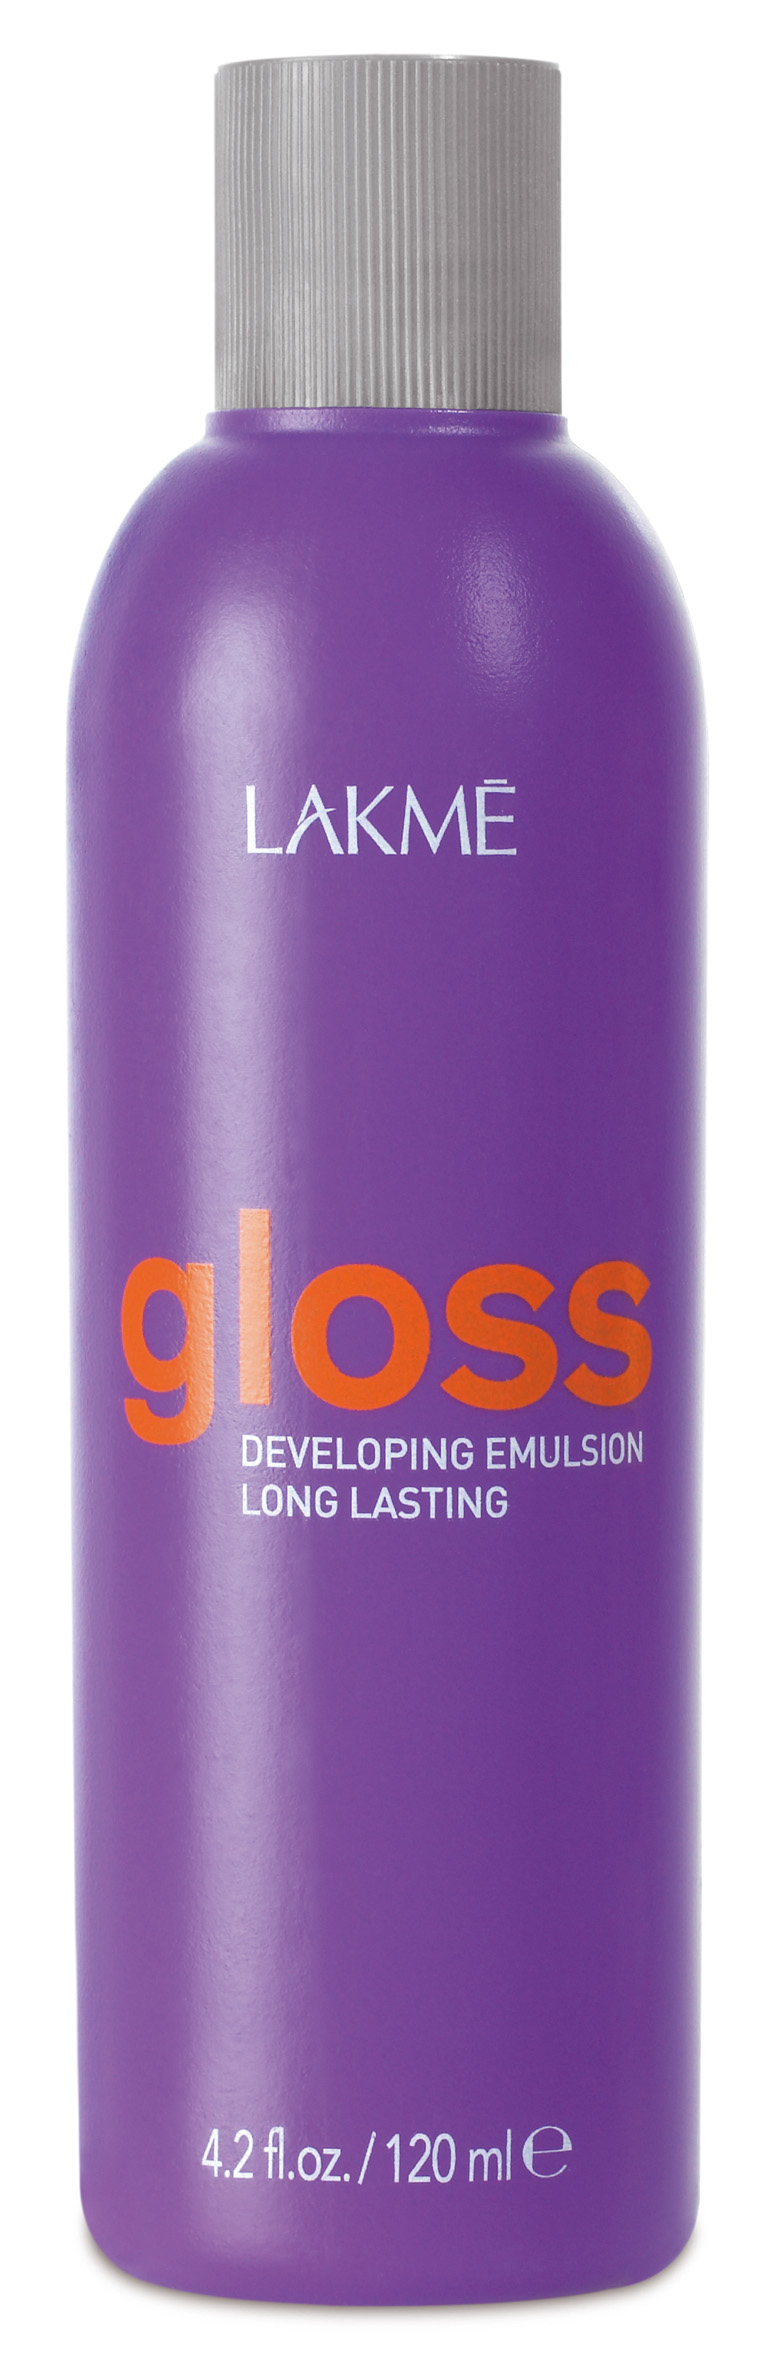 GLOSS LONG LASTING (6 vol. - 1,9%) Эмульсия проявляющая длительного действия (120 мл)